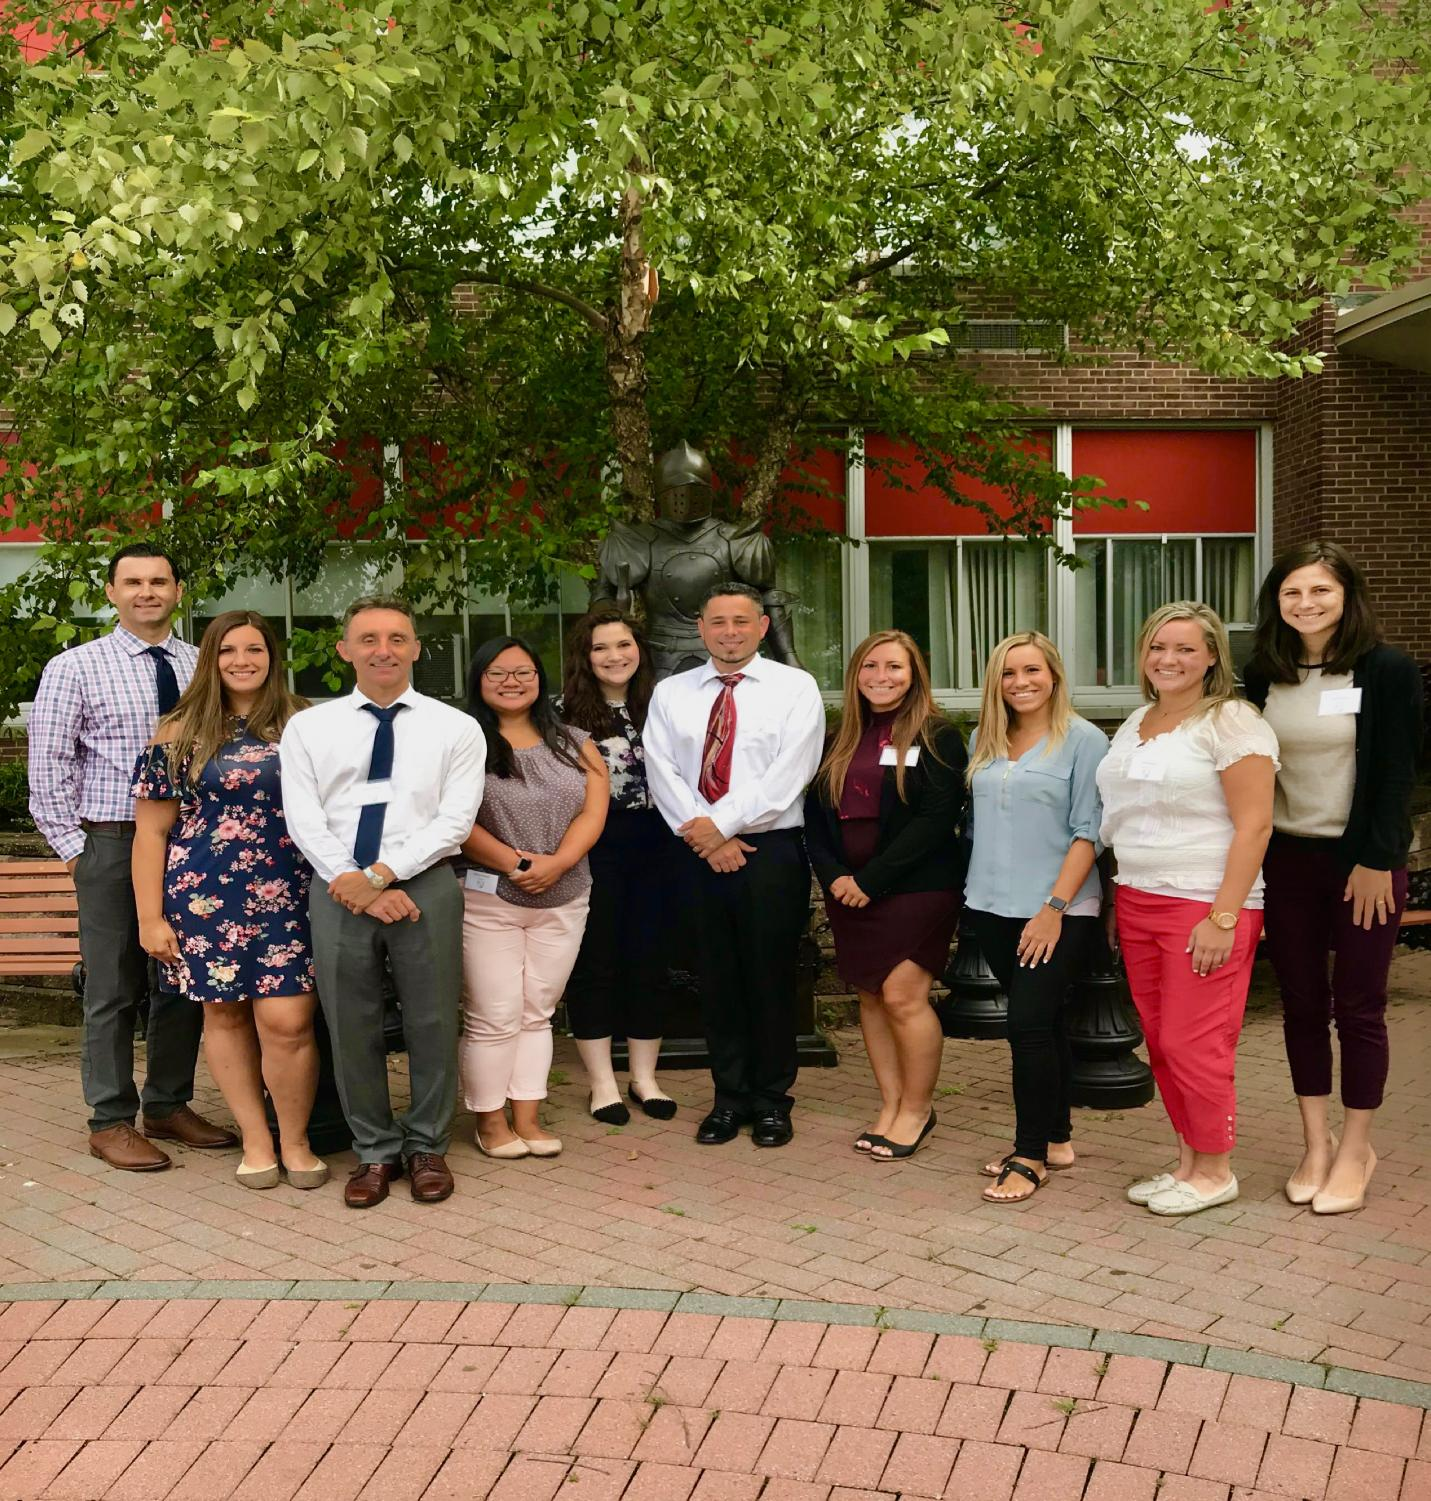 New teachers from left to right: Mr. Romano, Ms. Zirkel, Mr. Chapel, Ms. Rinaldi, Ms. Weisz, Mr. Livigne, Ms. Perry, Ms. Fleming, Ms. Carlson